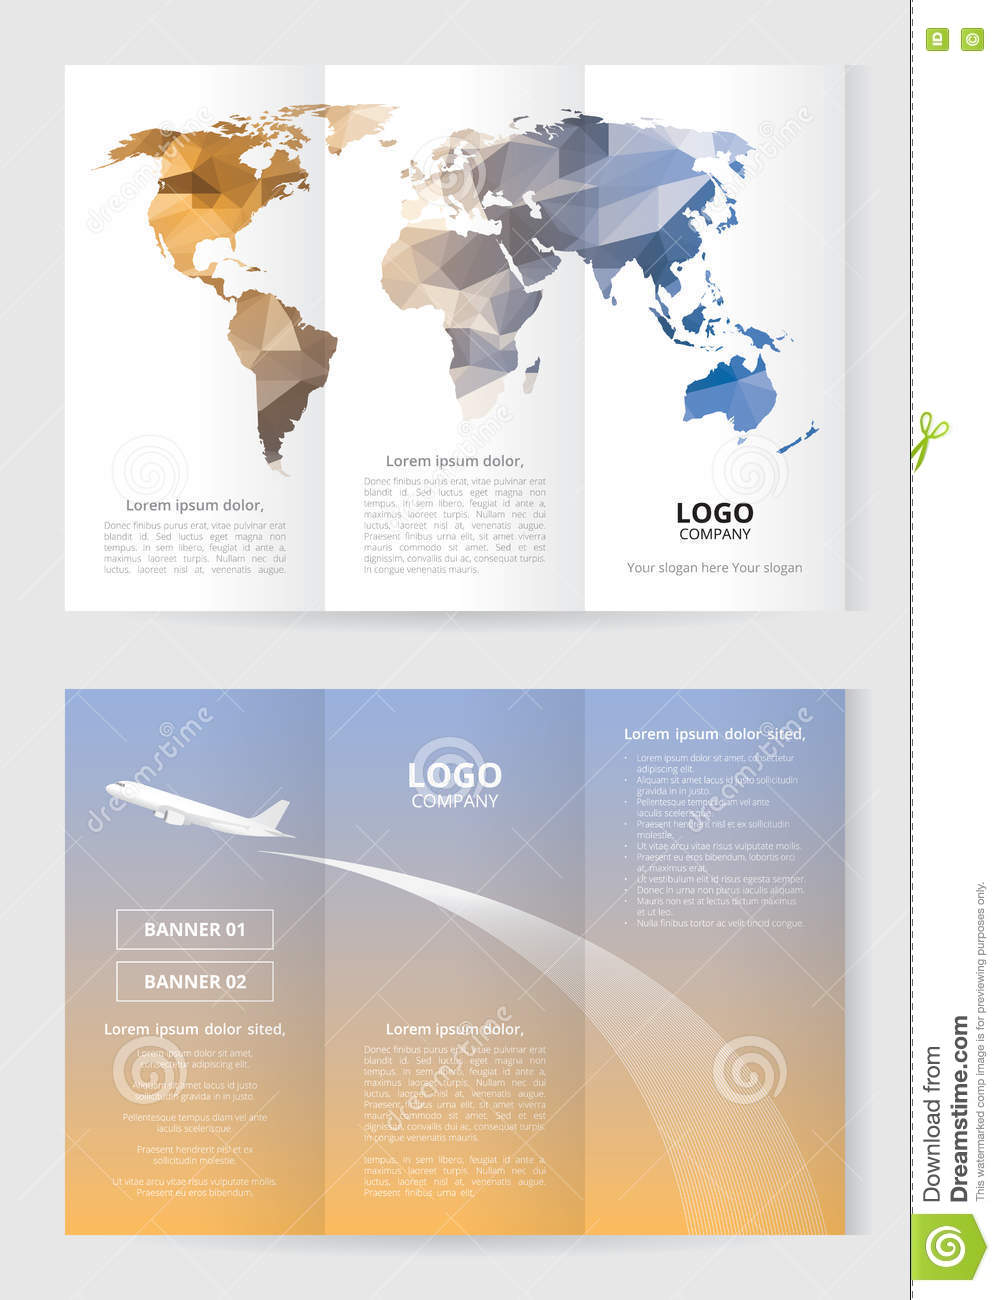 brochure template size - brochure template size a4 3 fold 2 side low polygon world